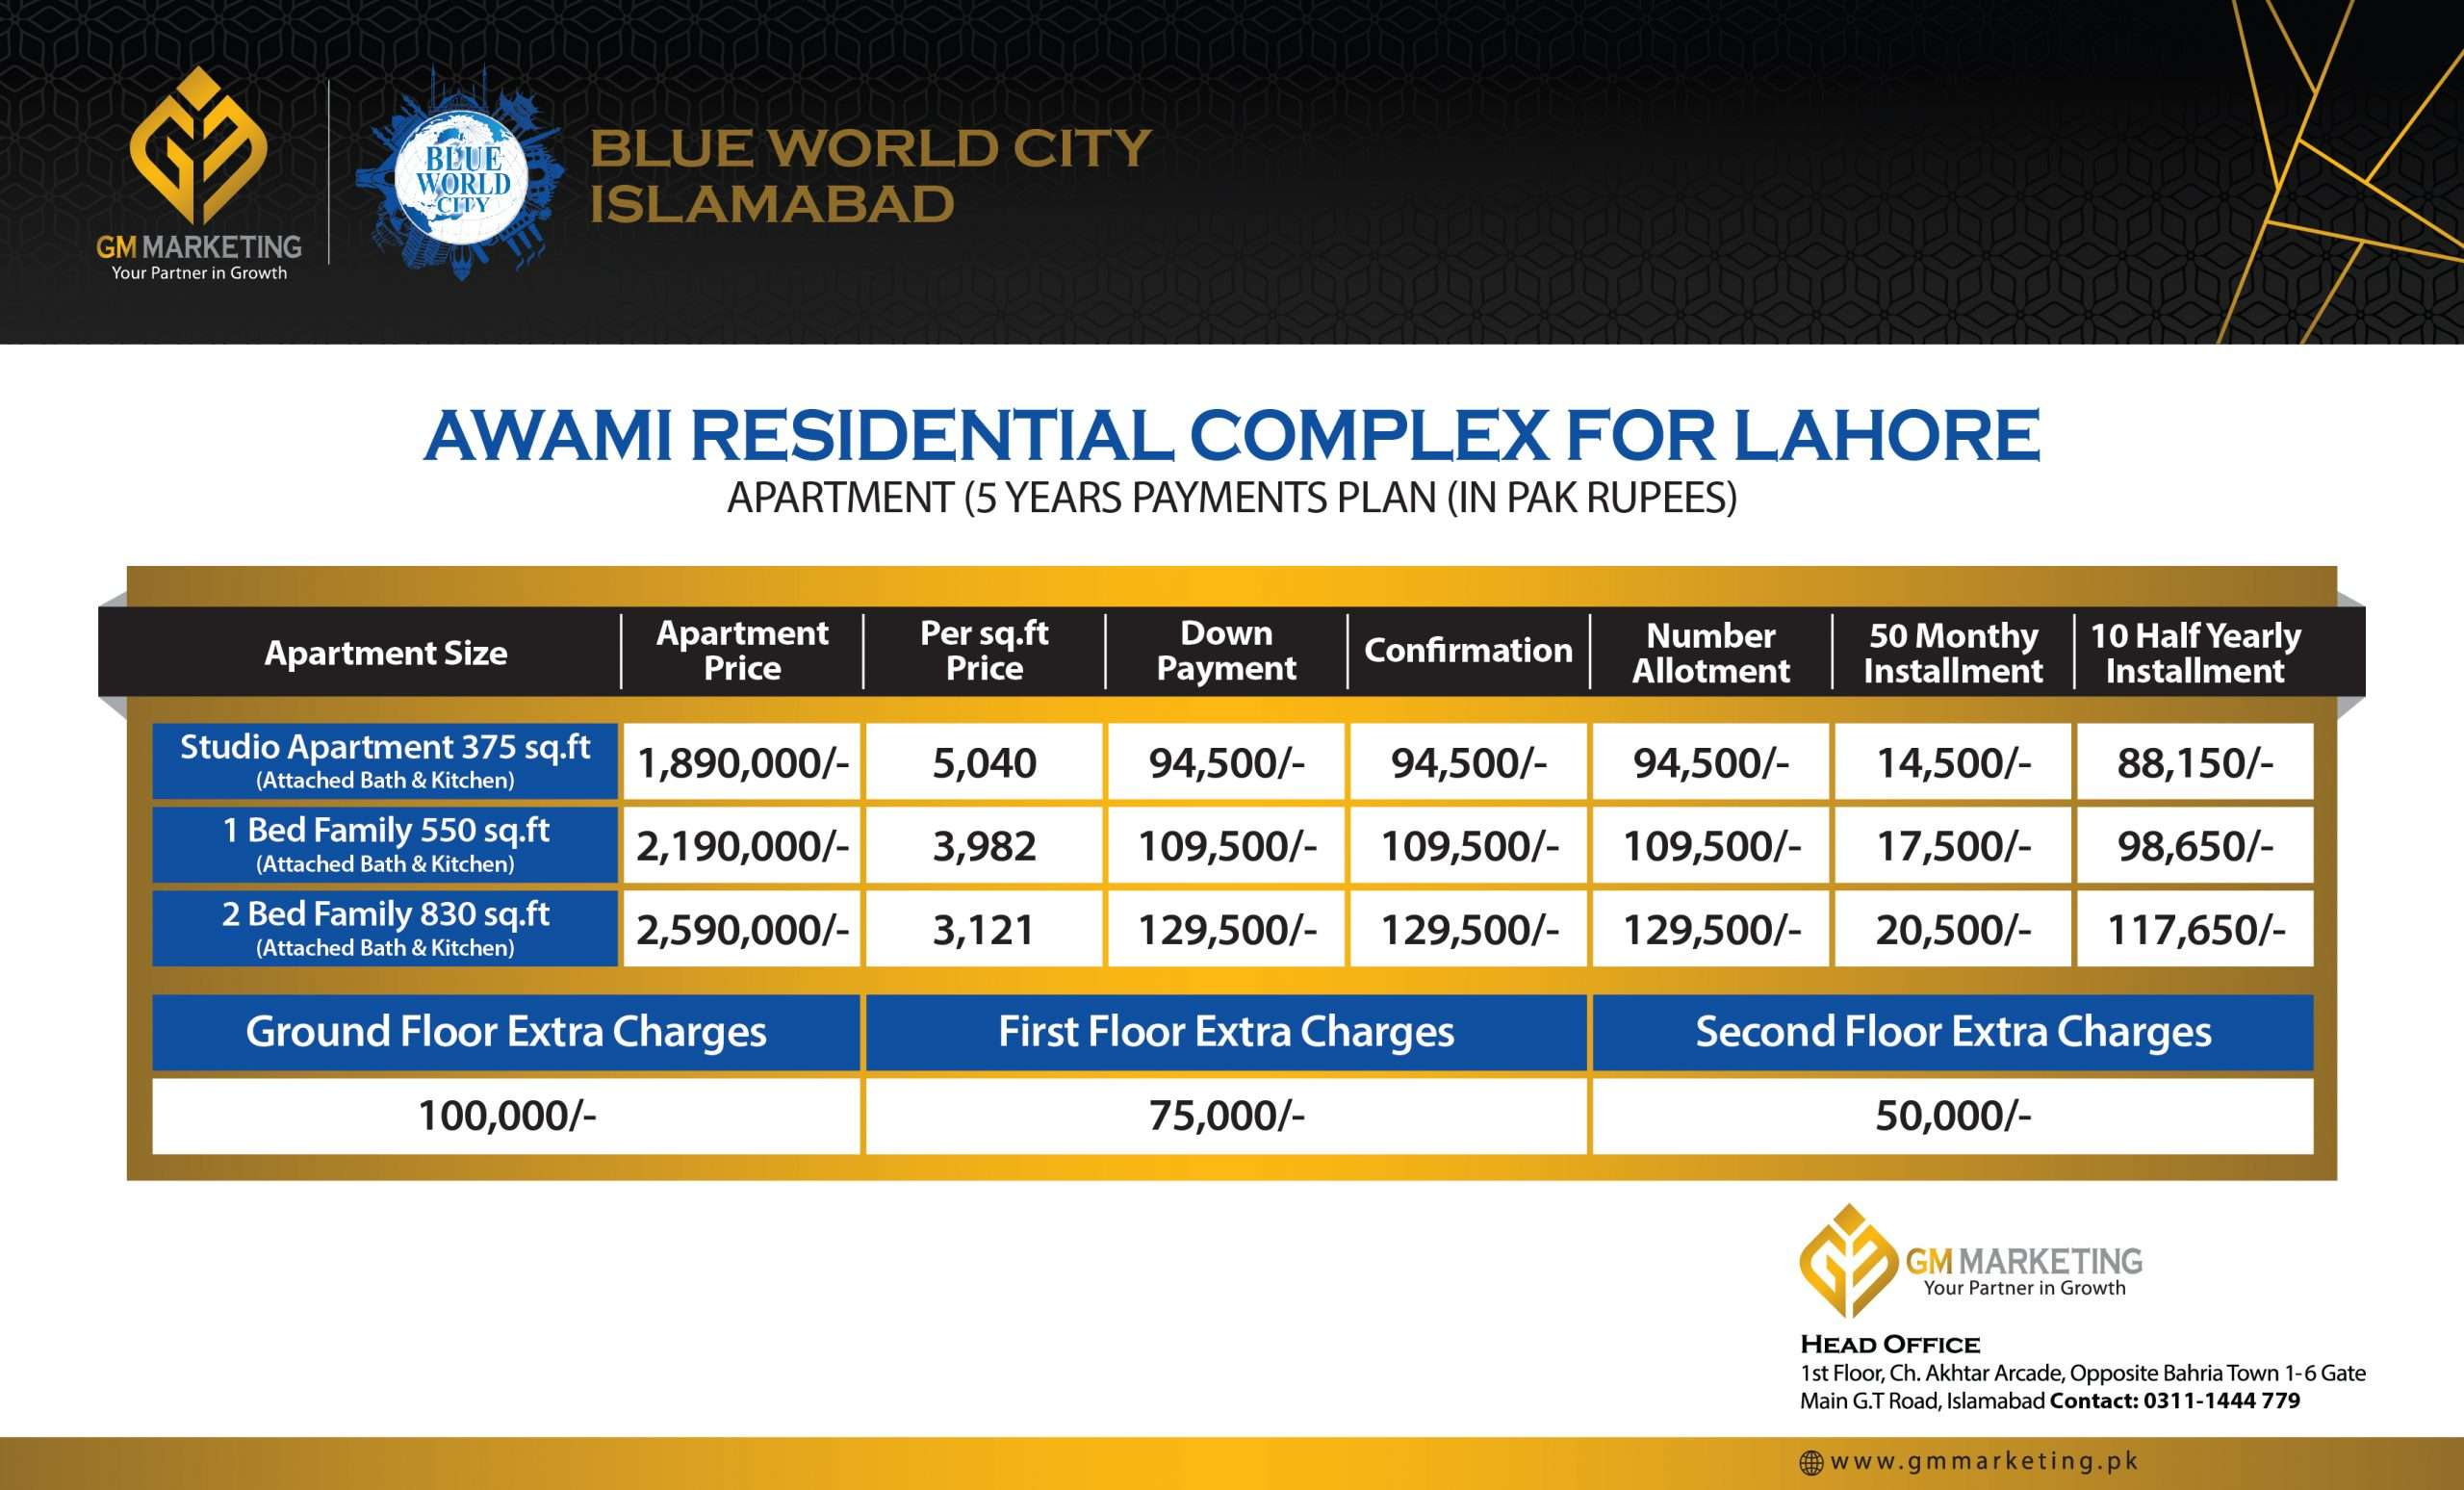 Awami Residential Complex Lahore Payment Plan_GM Marketing